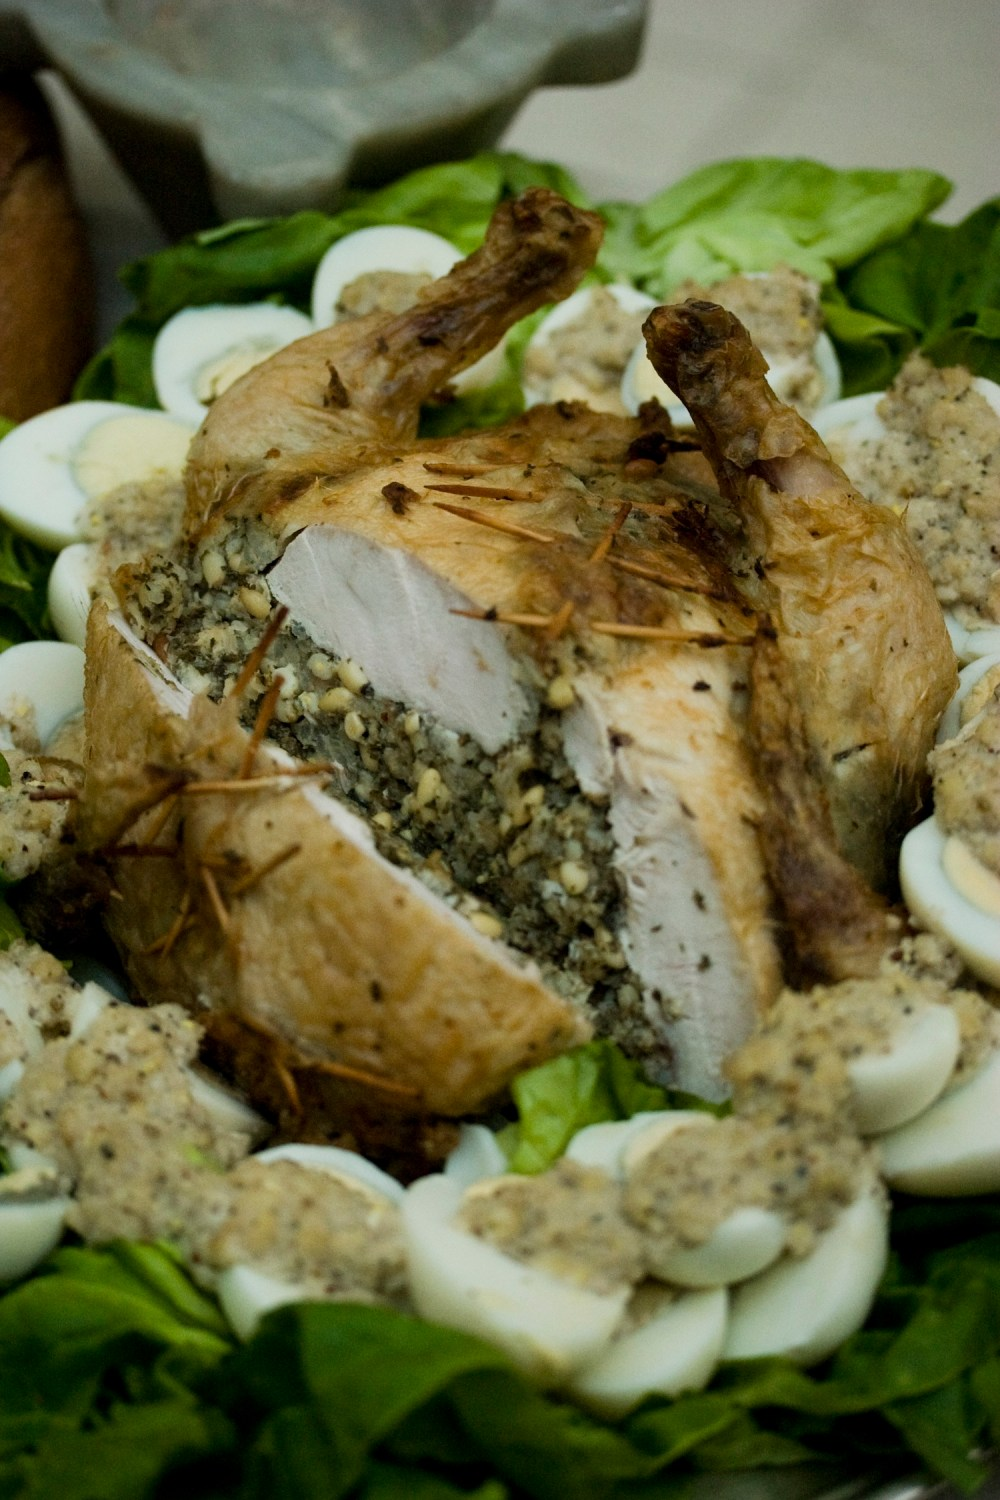 Stuffed Chicken, one of Apicius's recipes. Image via Flickr user vintagedept.